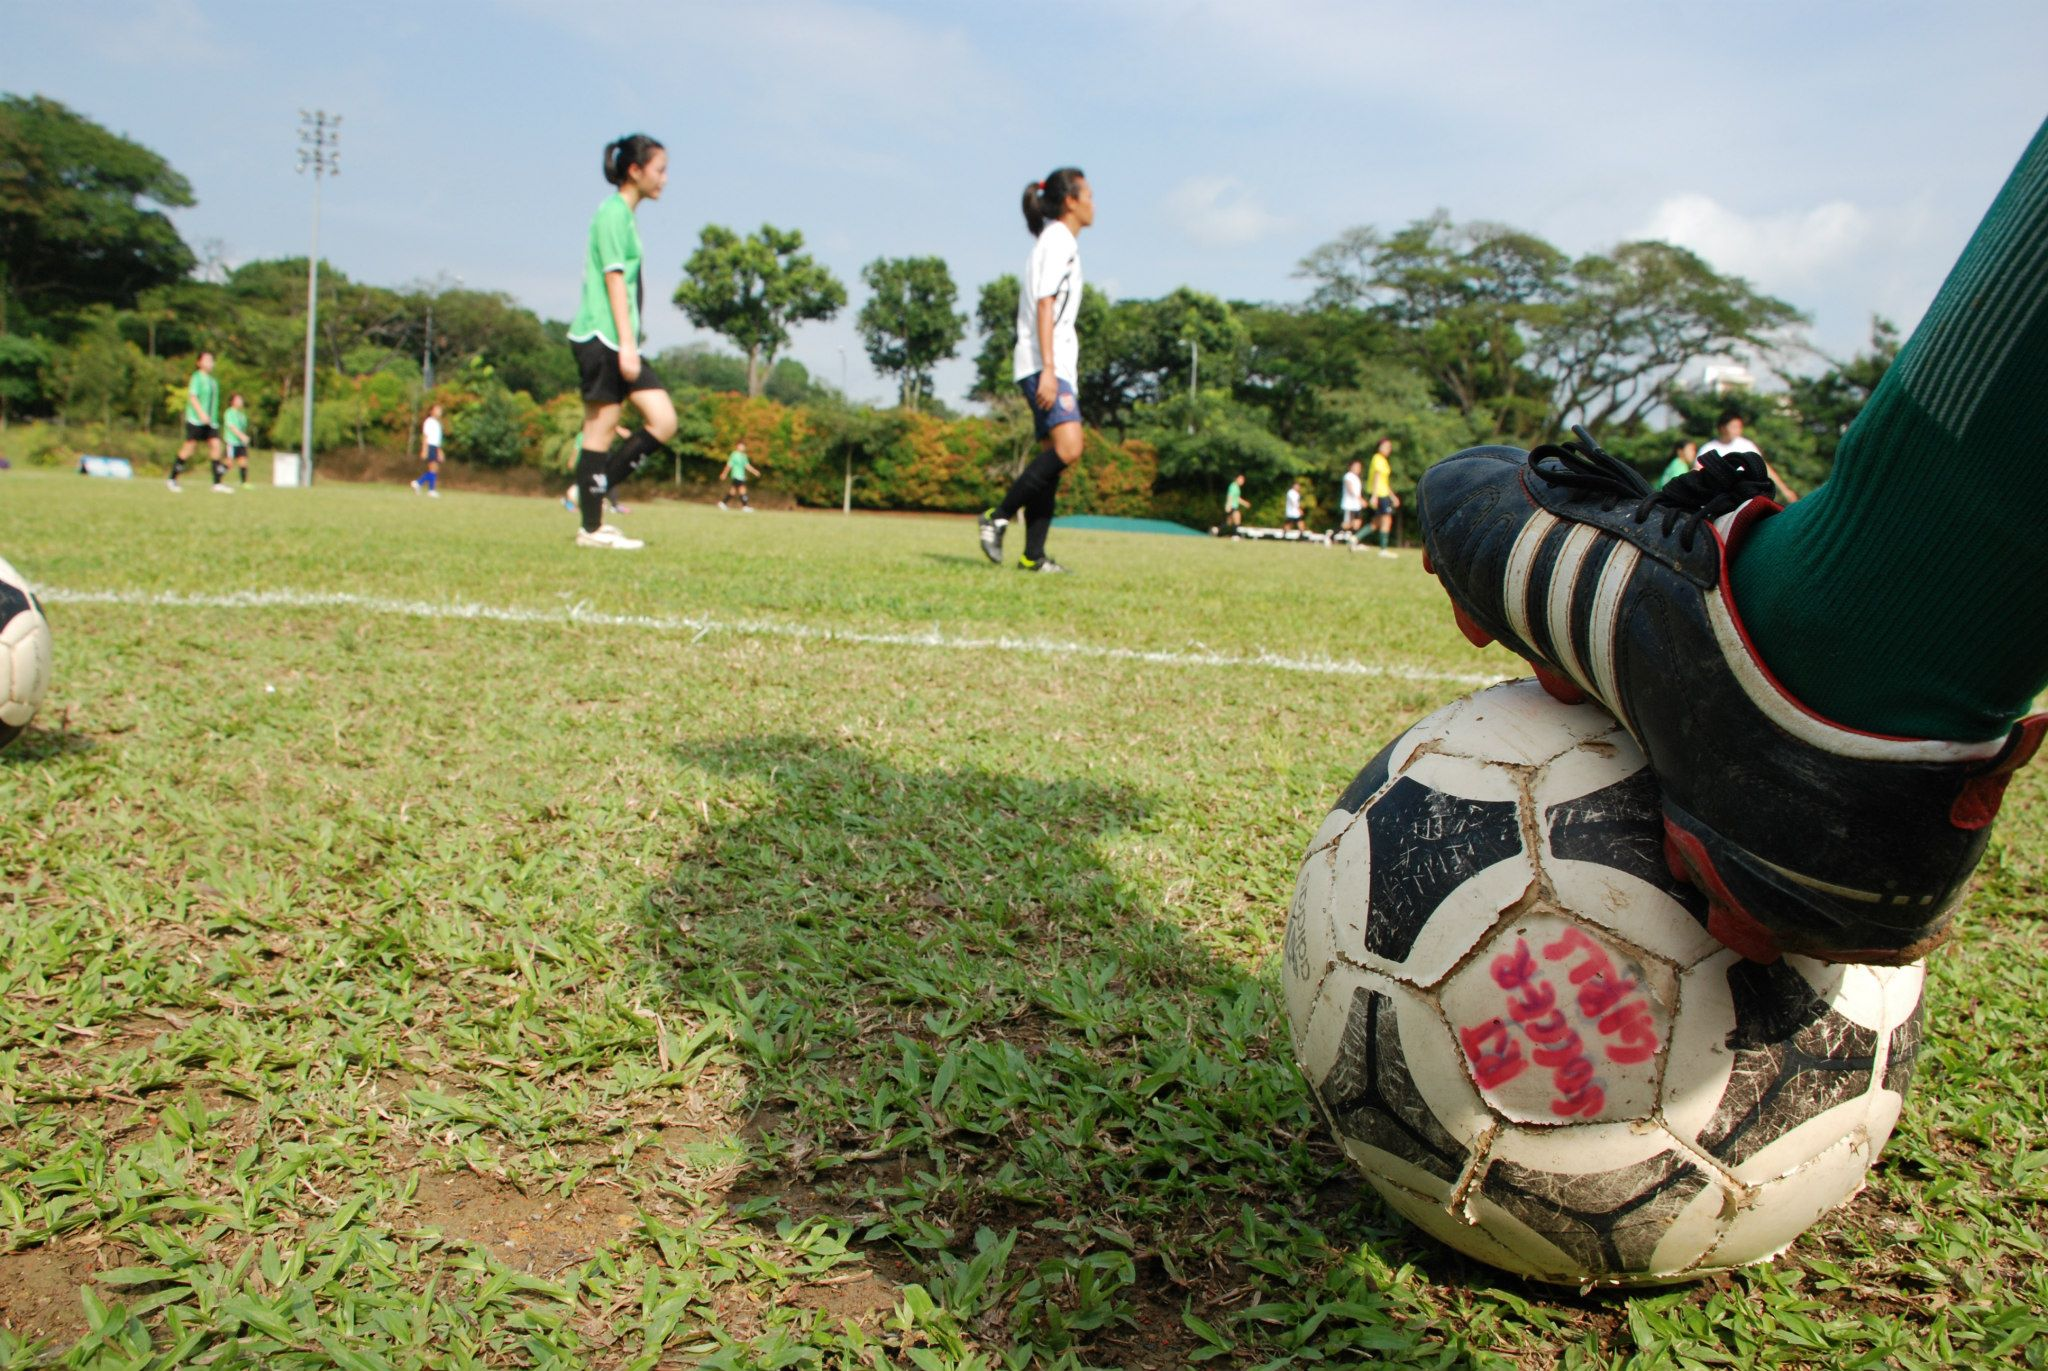 Foot Kicking Soccer Ball Icon Soccer is a game usually